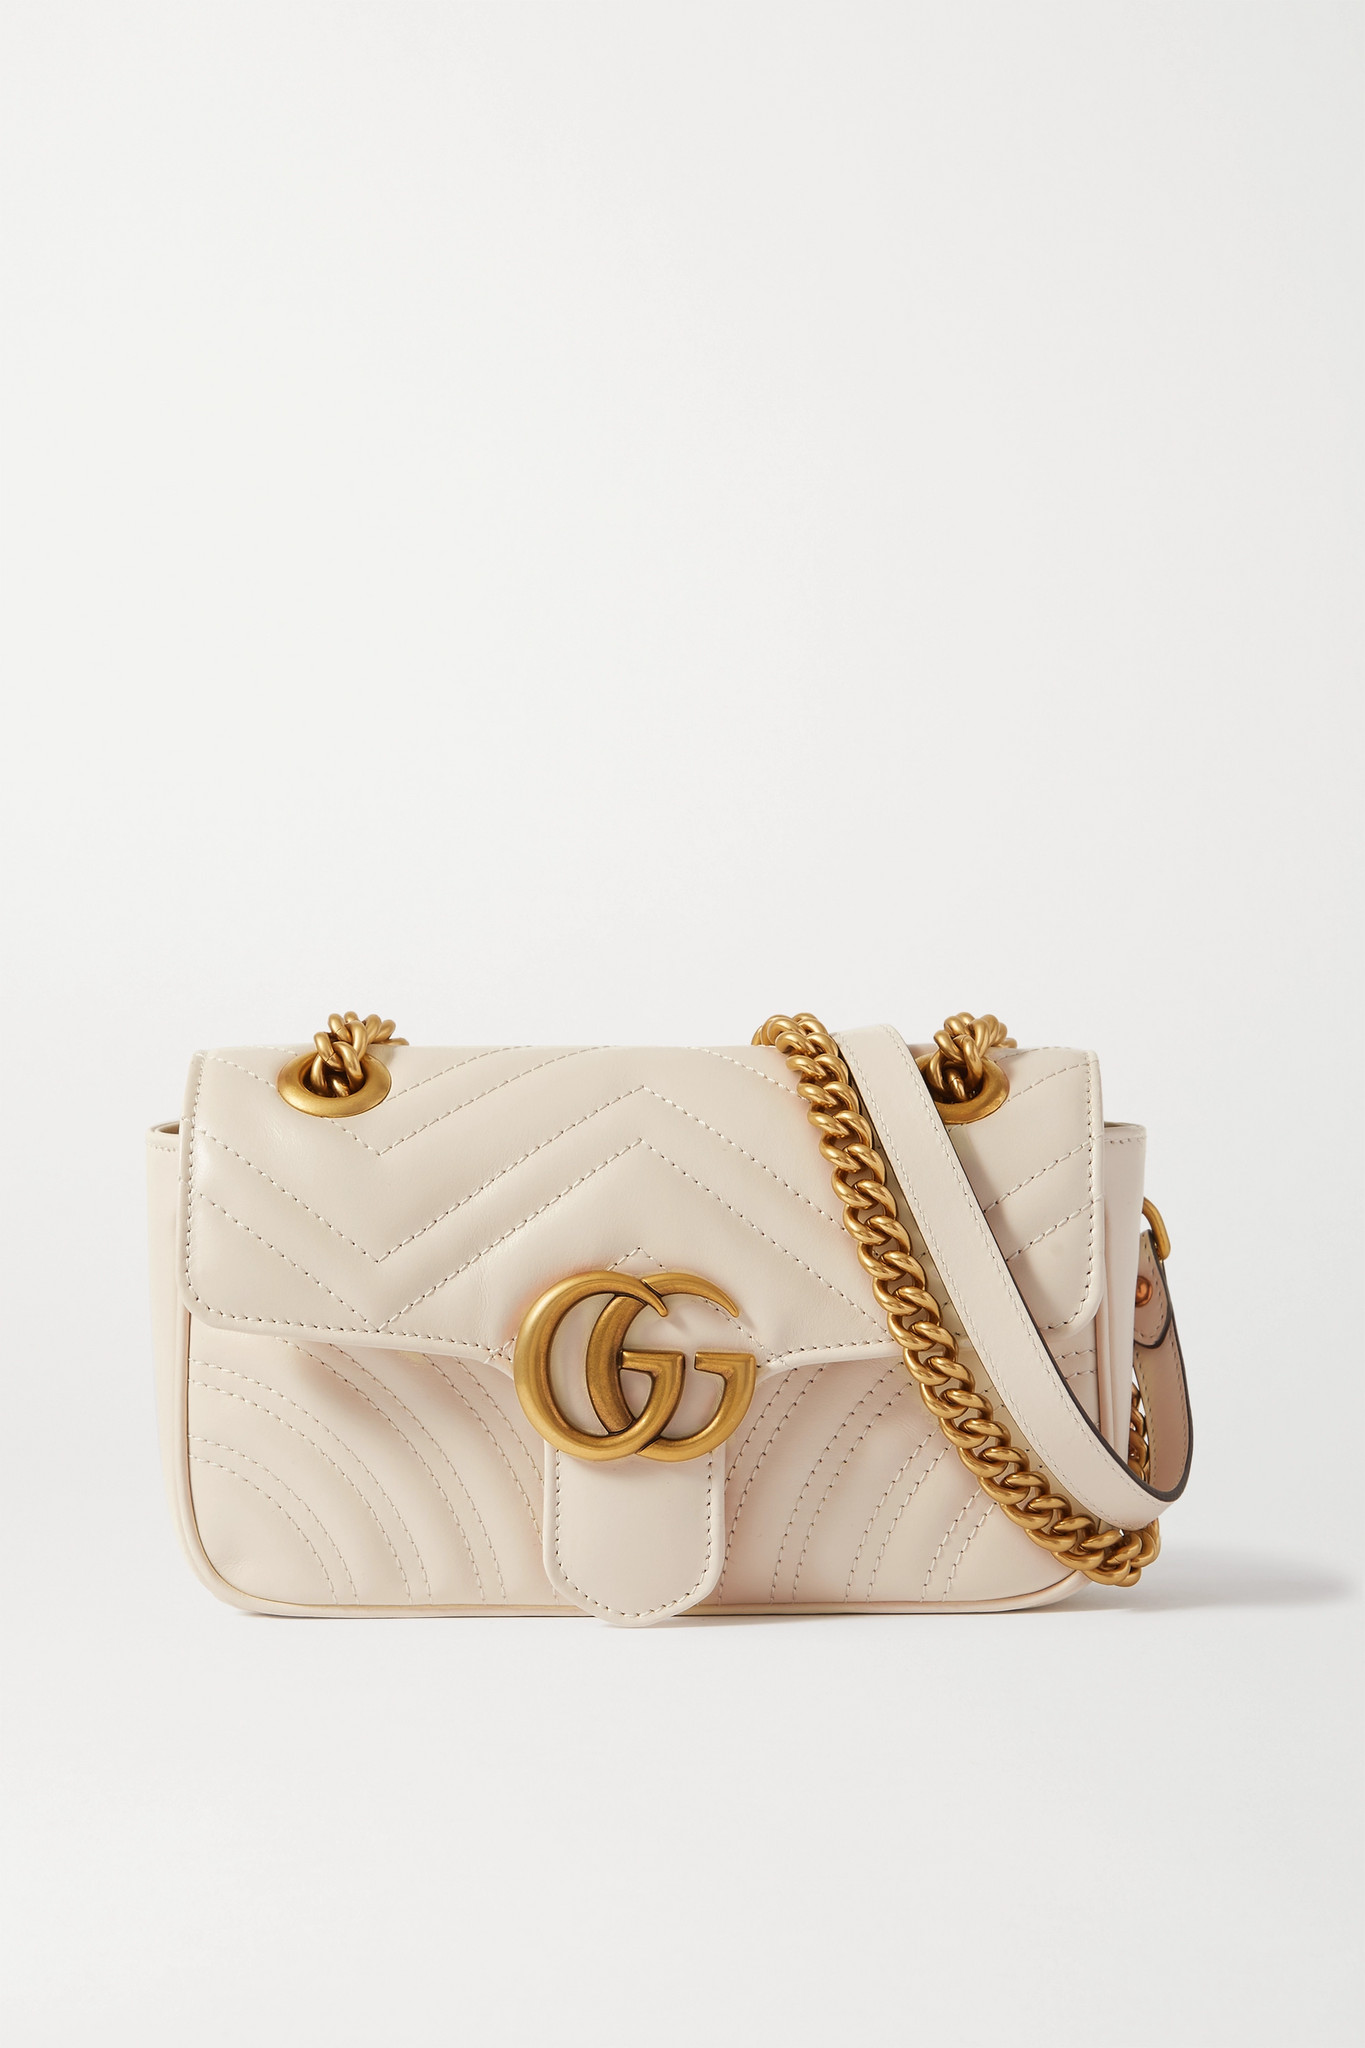 GUCCI - Gg Marmont Quilted Leather Shoulder Bag - White - one size